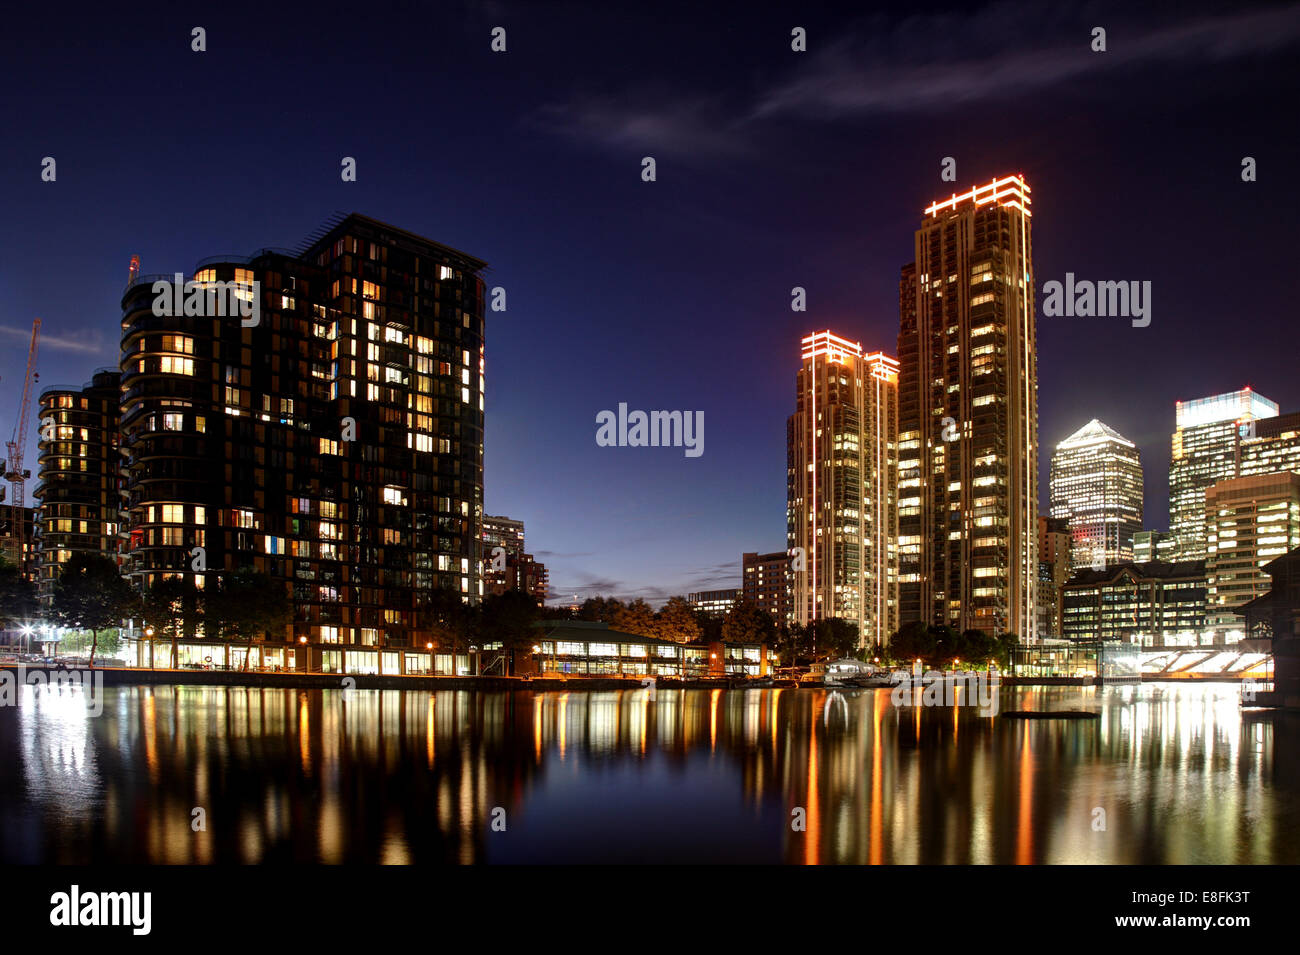 London, UK-Canary Wharf Stockbild